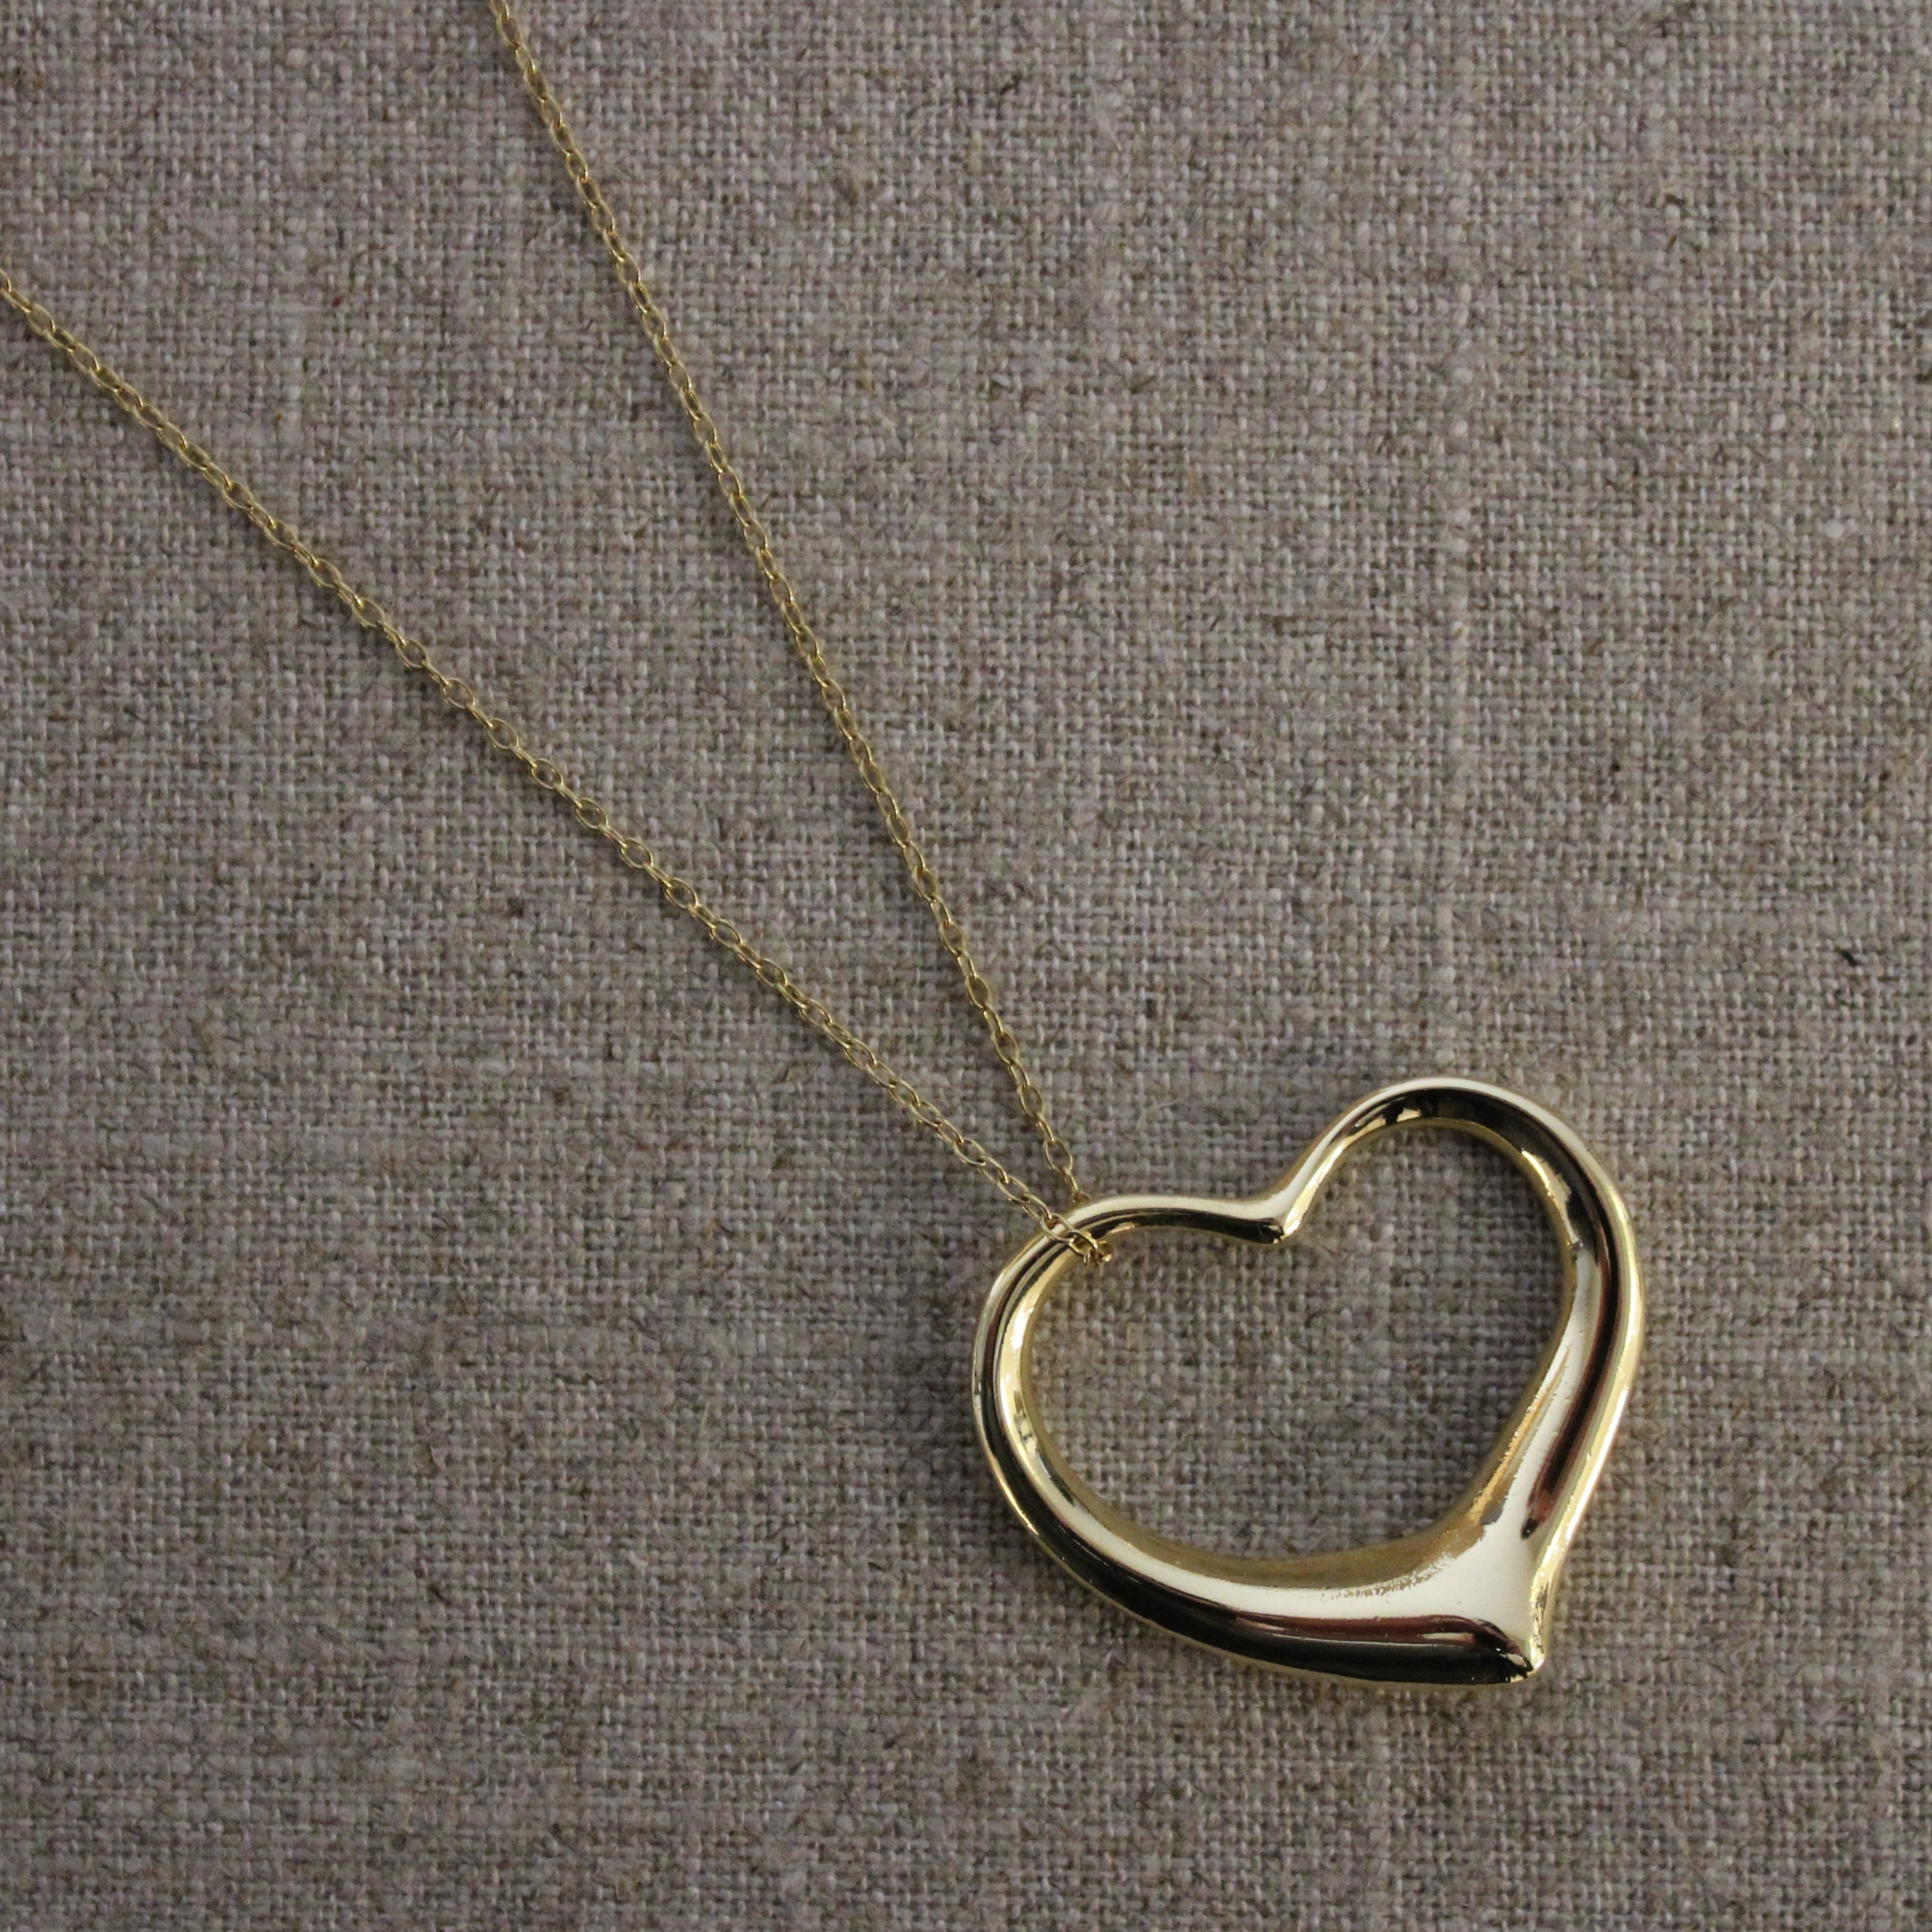 18K YELLOW GOLD TIFFANY AND COMPANY PERETTI HEART PENDANT